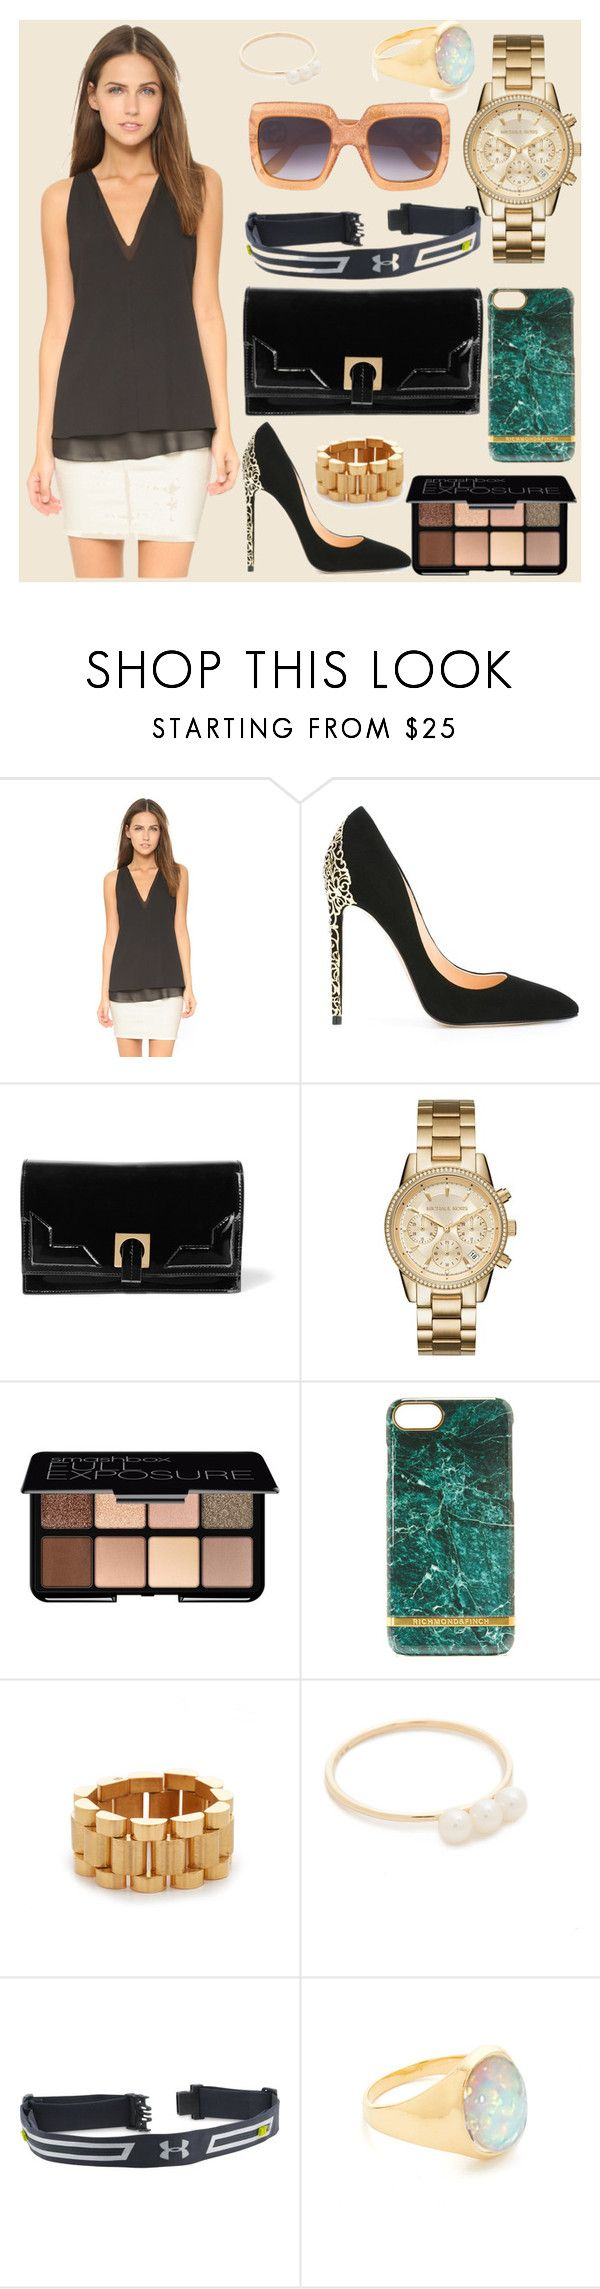 """Fashion arounds you"" by camry-brynn ❤ liked on Polyvore featuring Cooper & Ella, Cerasella Milano, Halston Heritage, MICHAEL Michael Kors, Smashbox, Amber Sceats, EF Collection, Under Armour, Jacquie Aiche and Gucci"